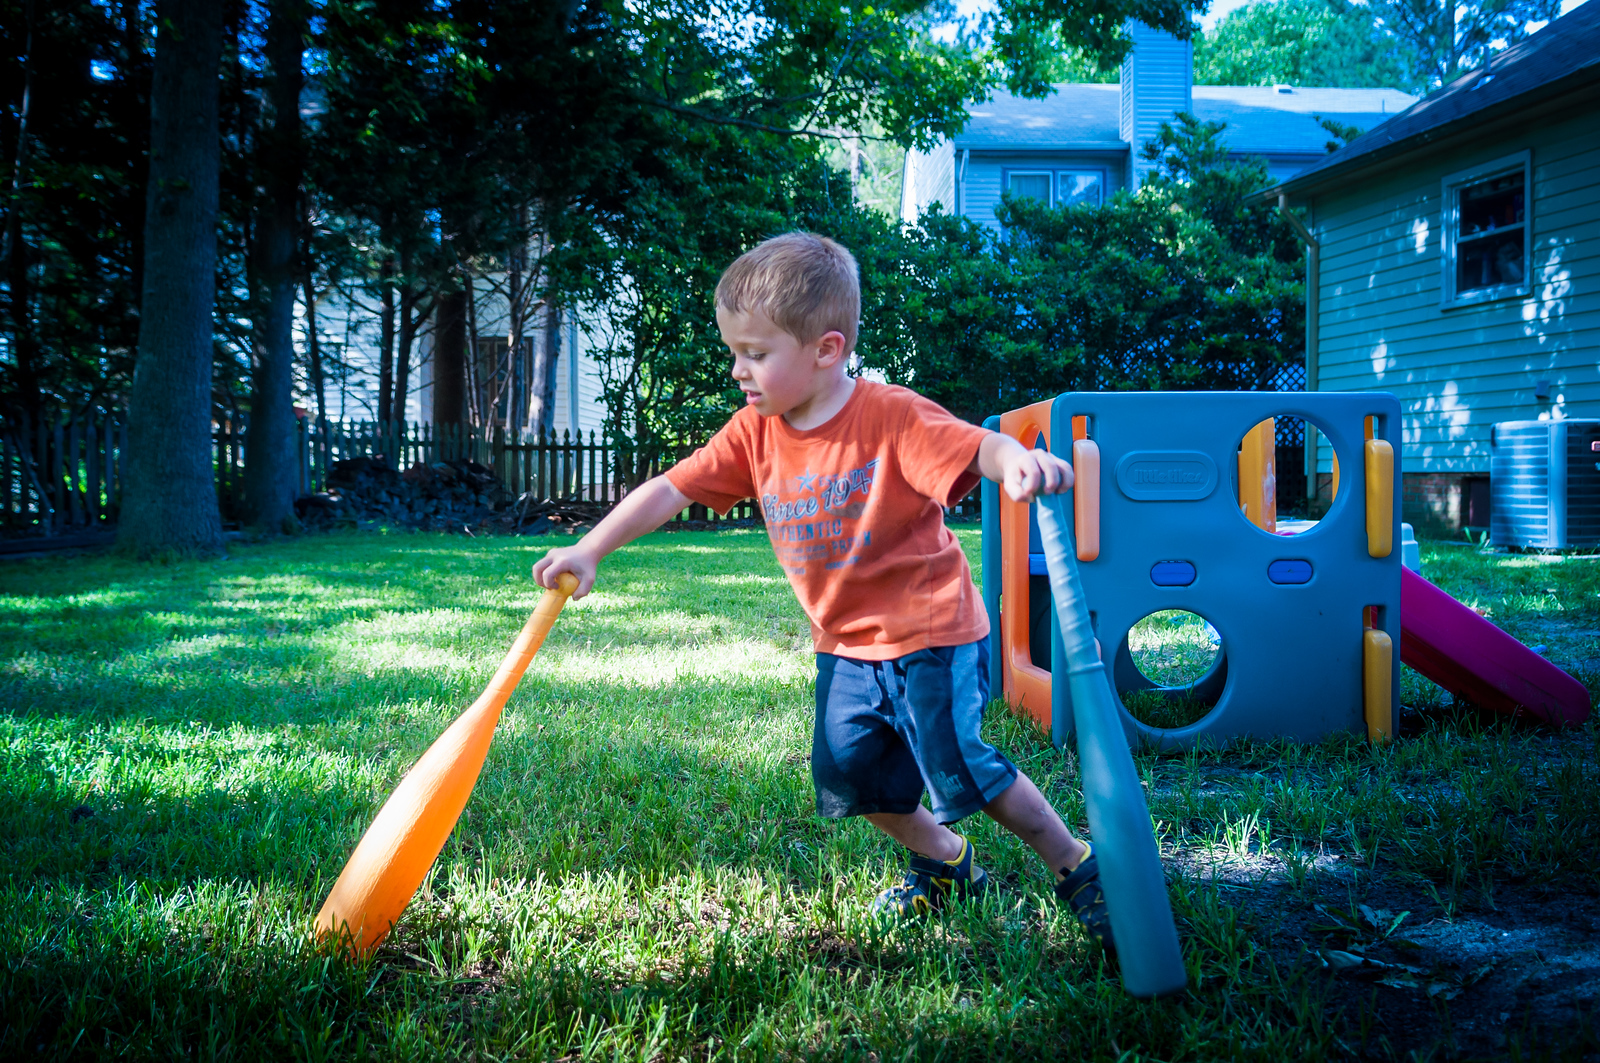 McKay at Play - June 15